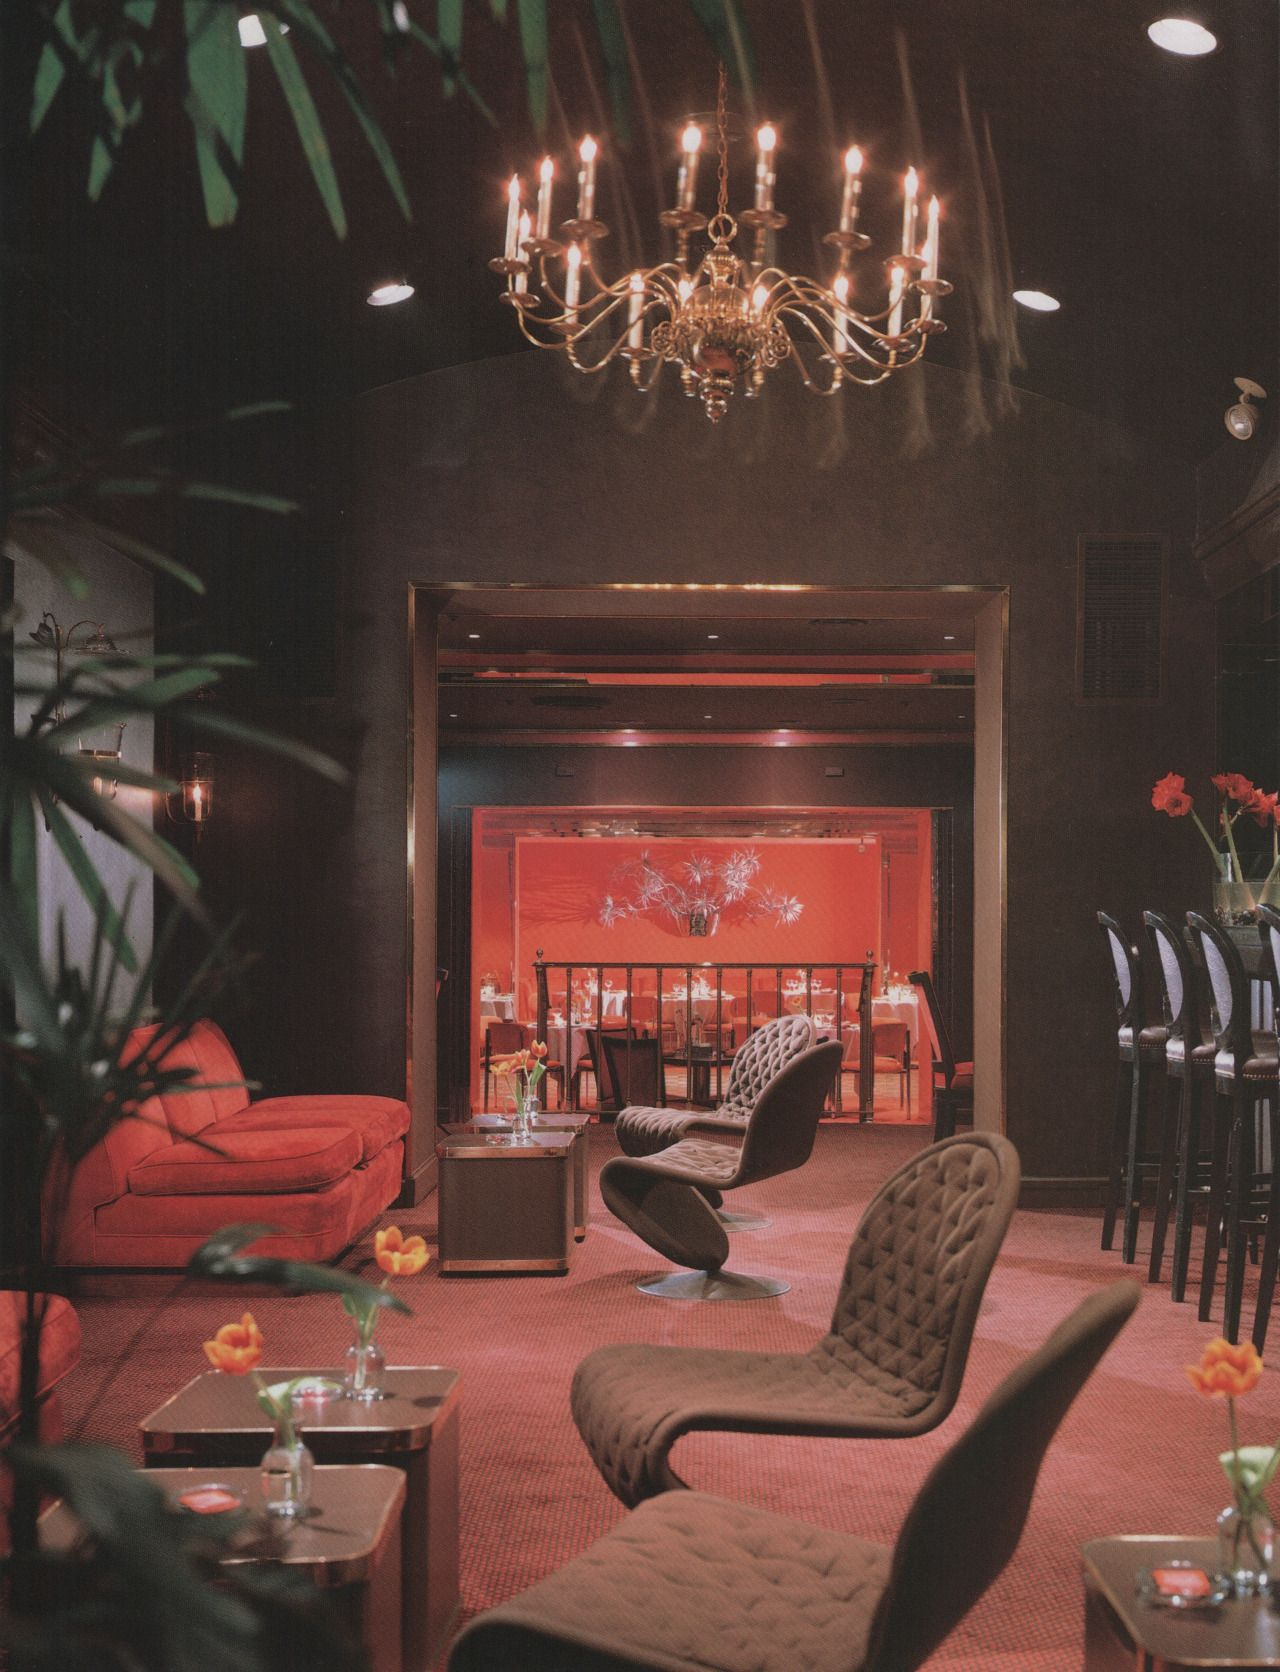 Double S New York New York From Dining By Design 1985 Retro